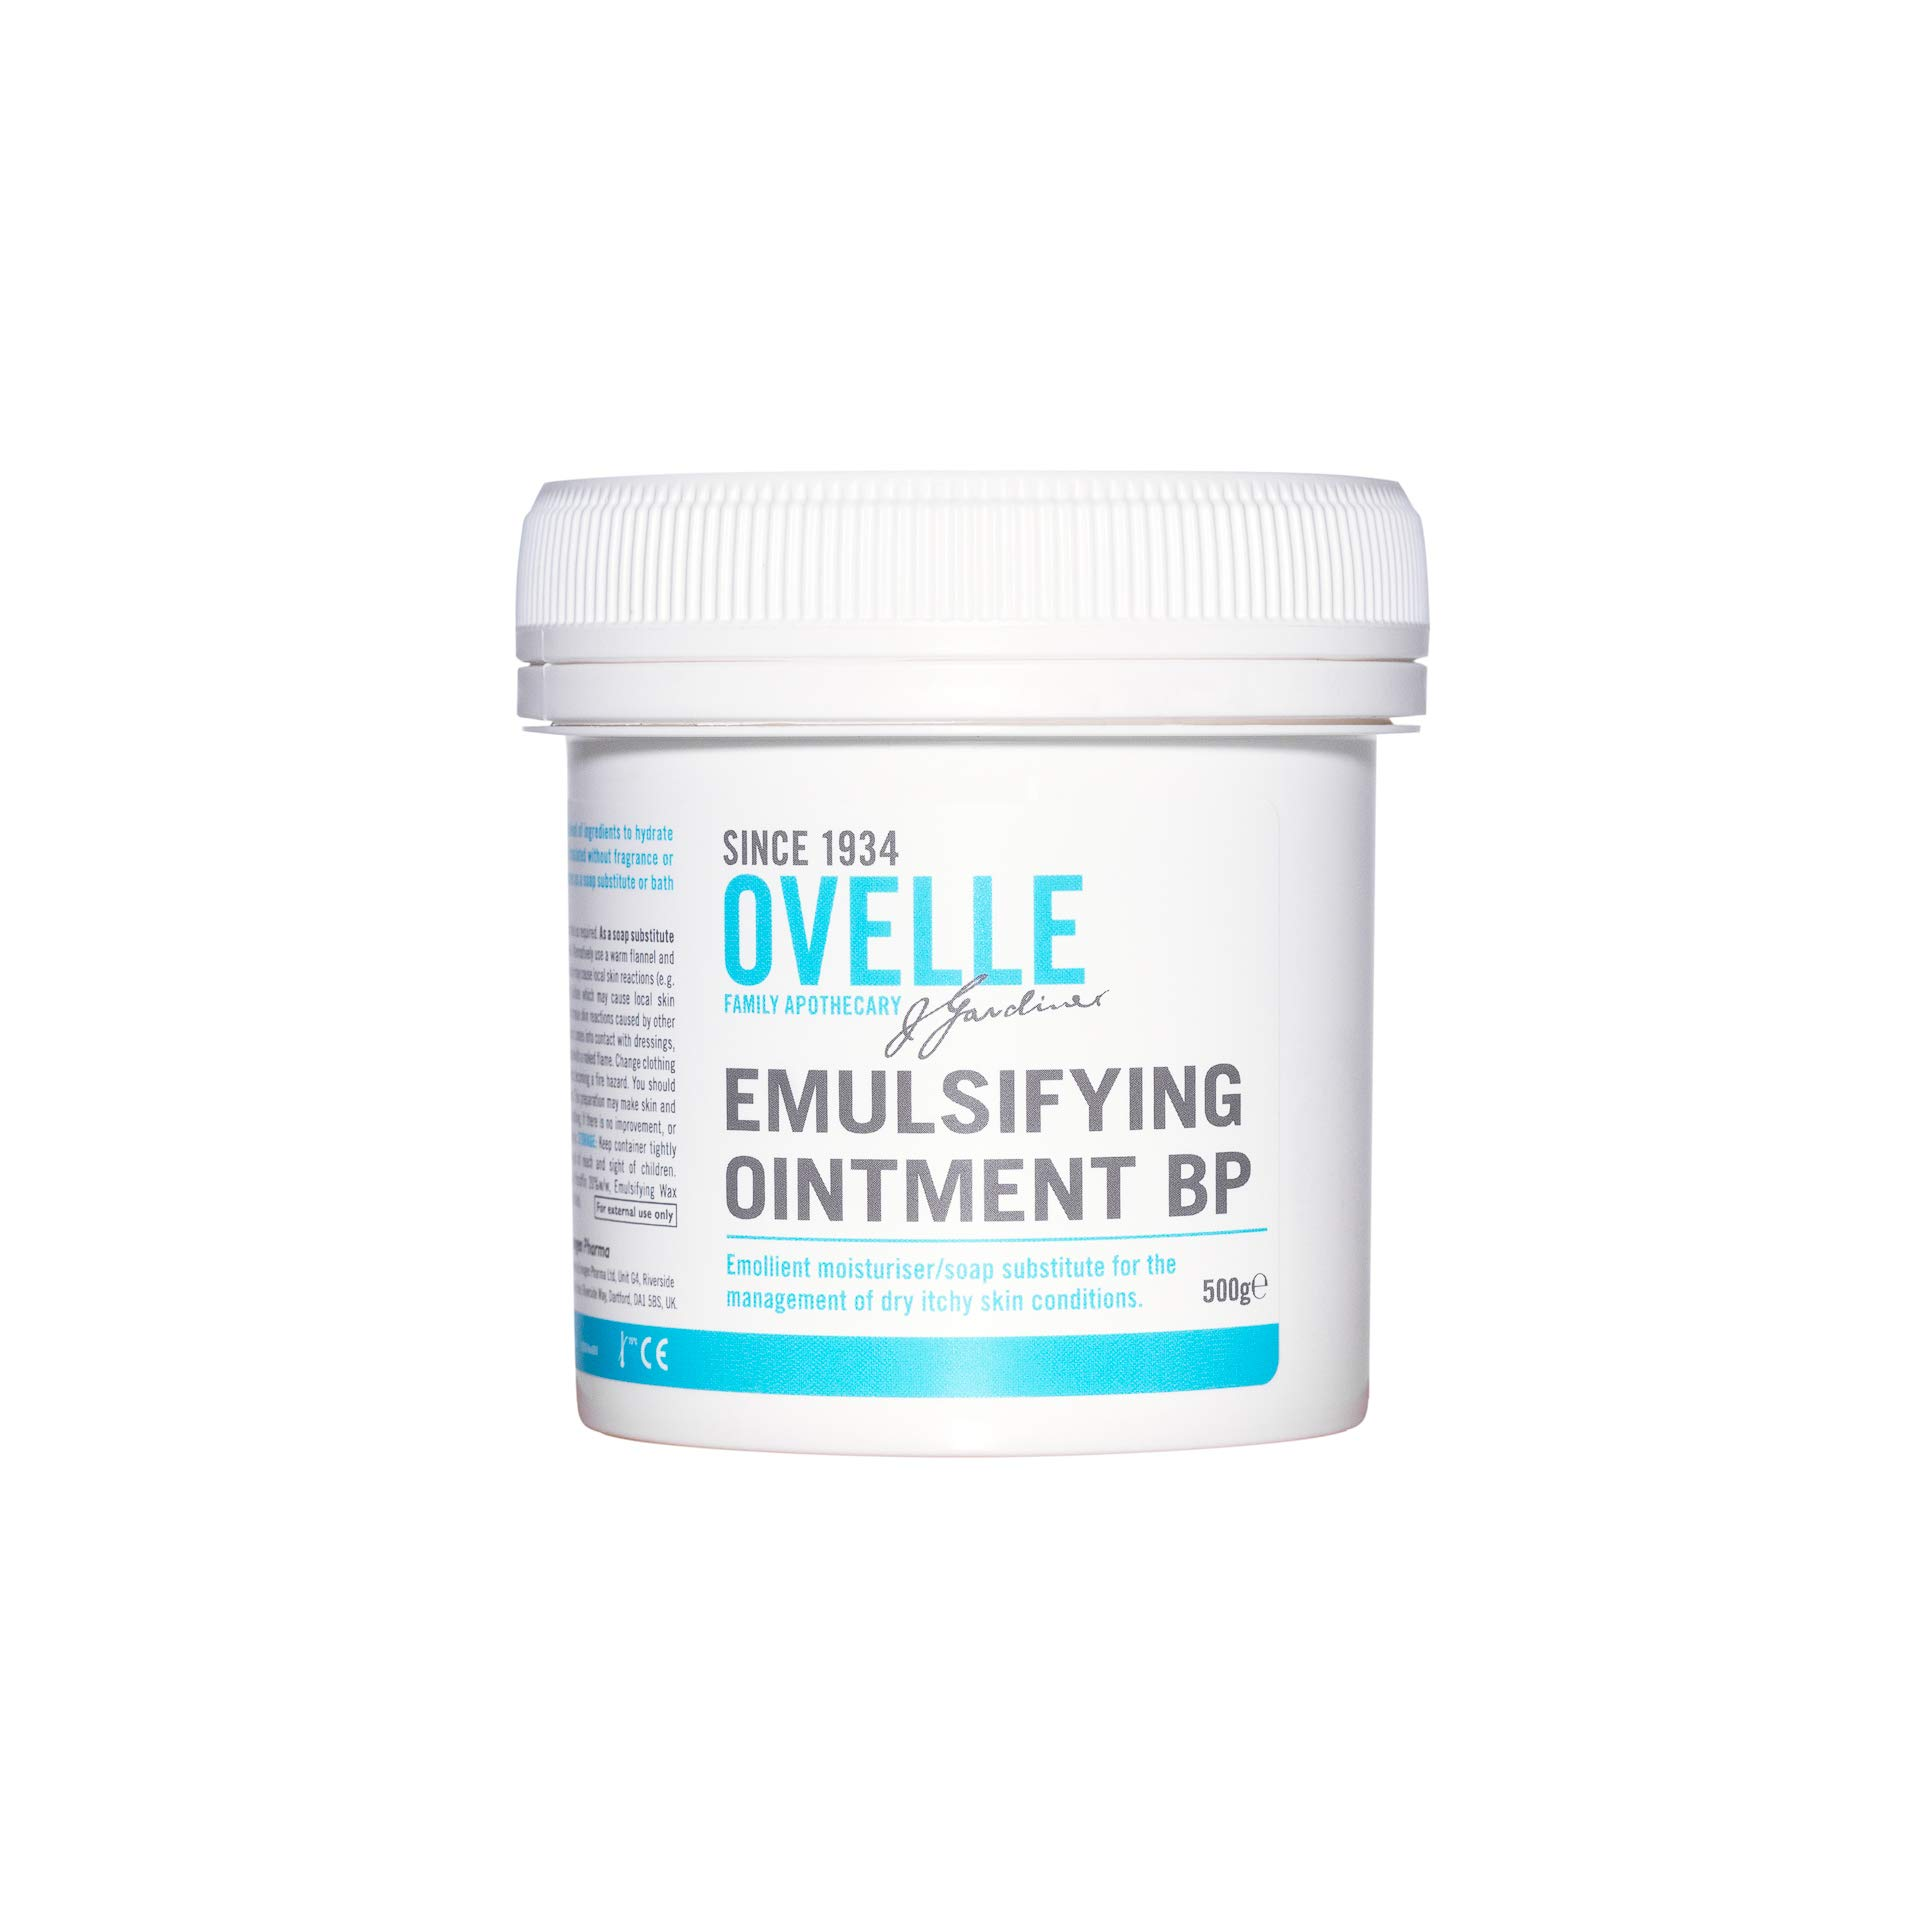 Emulsifying Ointment 500g Different Brands Packaging May Vary